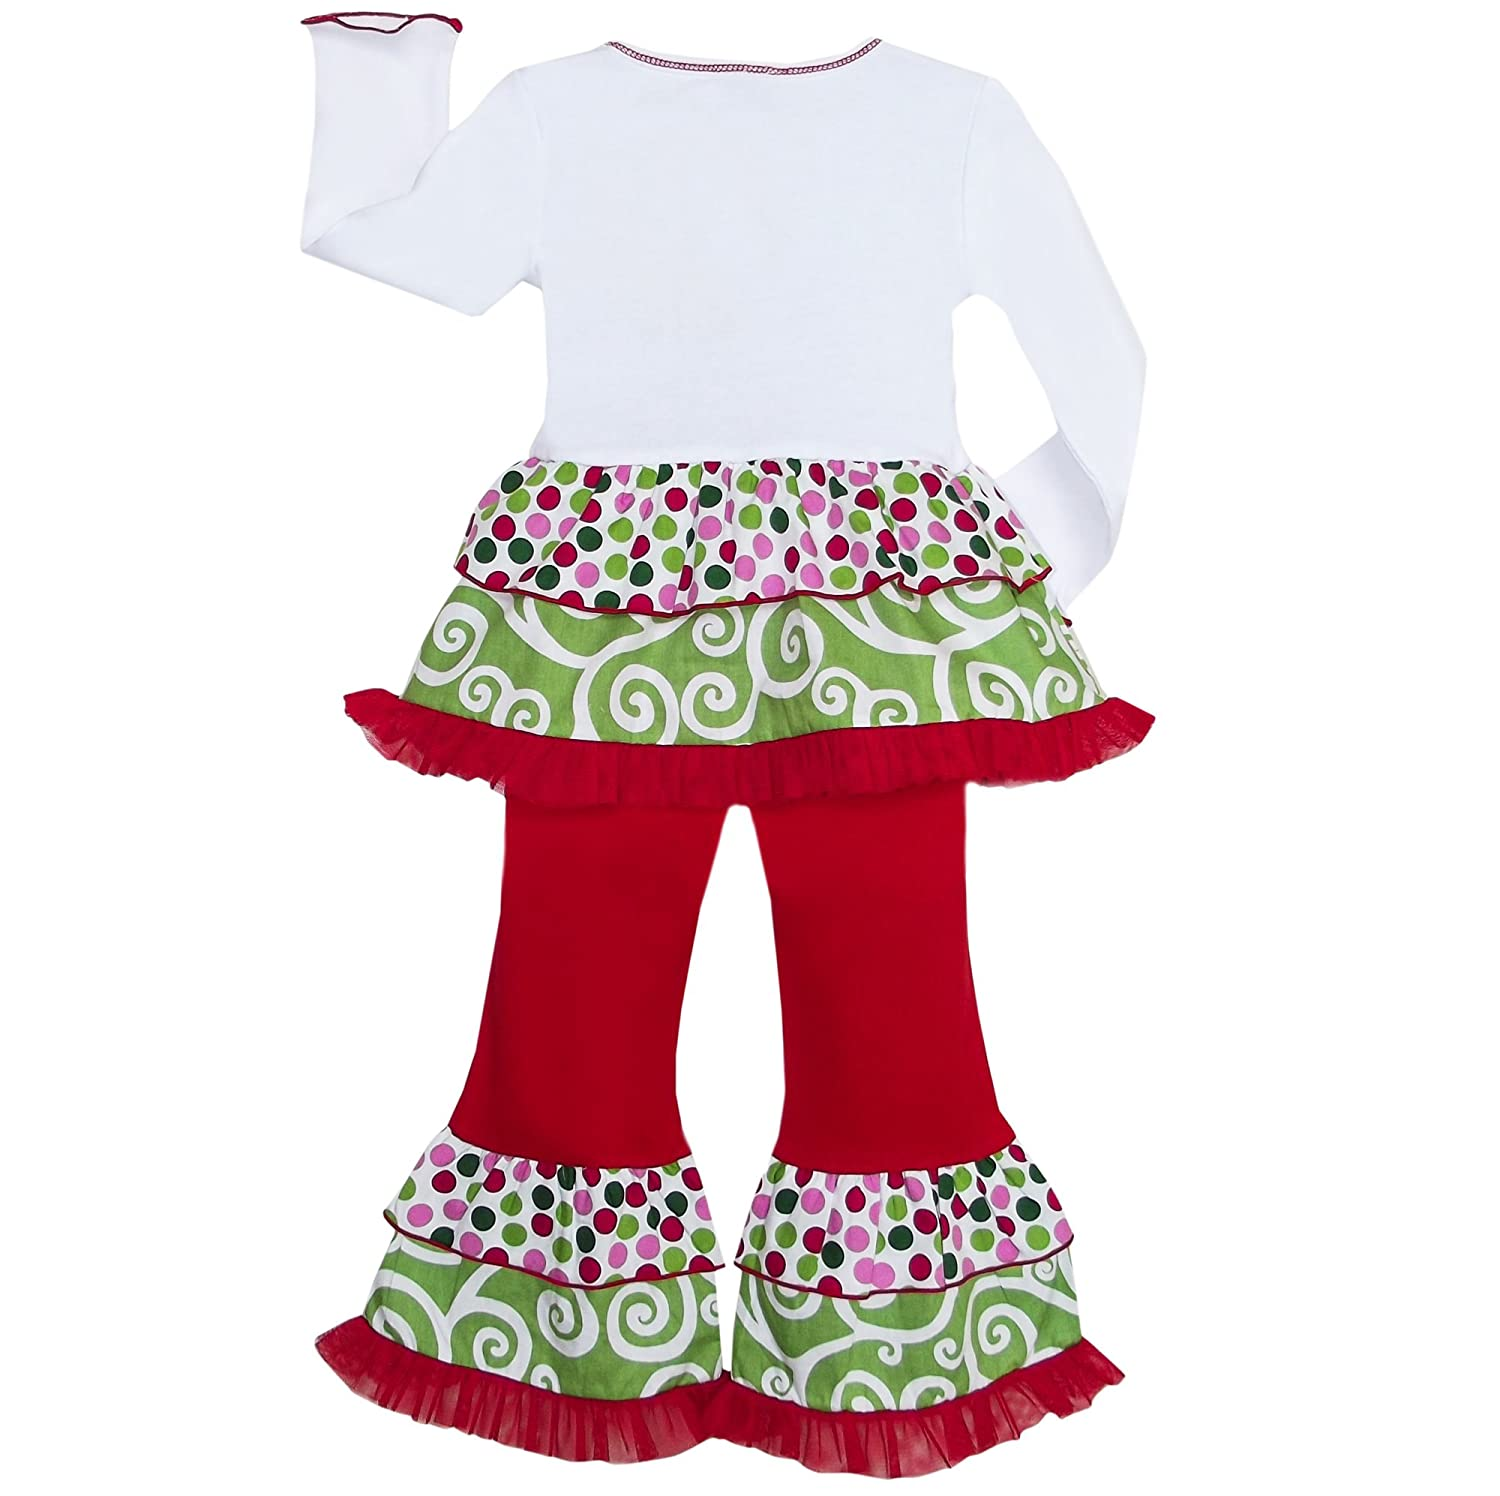 4e6bbd85 Amazon.com: AnnLoren Little Girls 2/3T Boutique Polka Dot & Swirl Christmas  Tree Clothes: Clothing